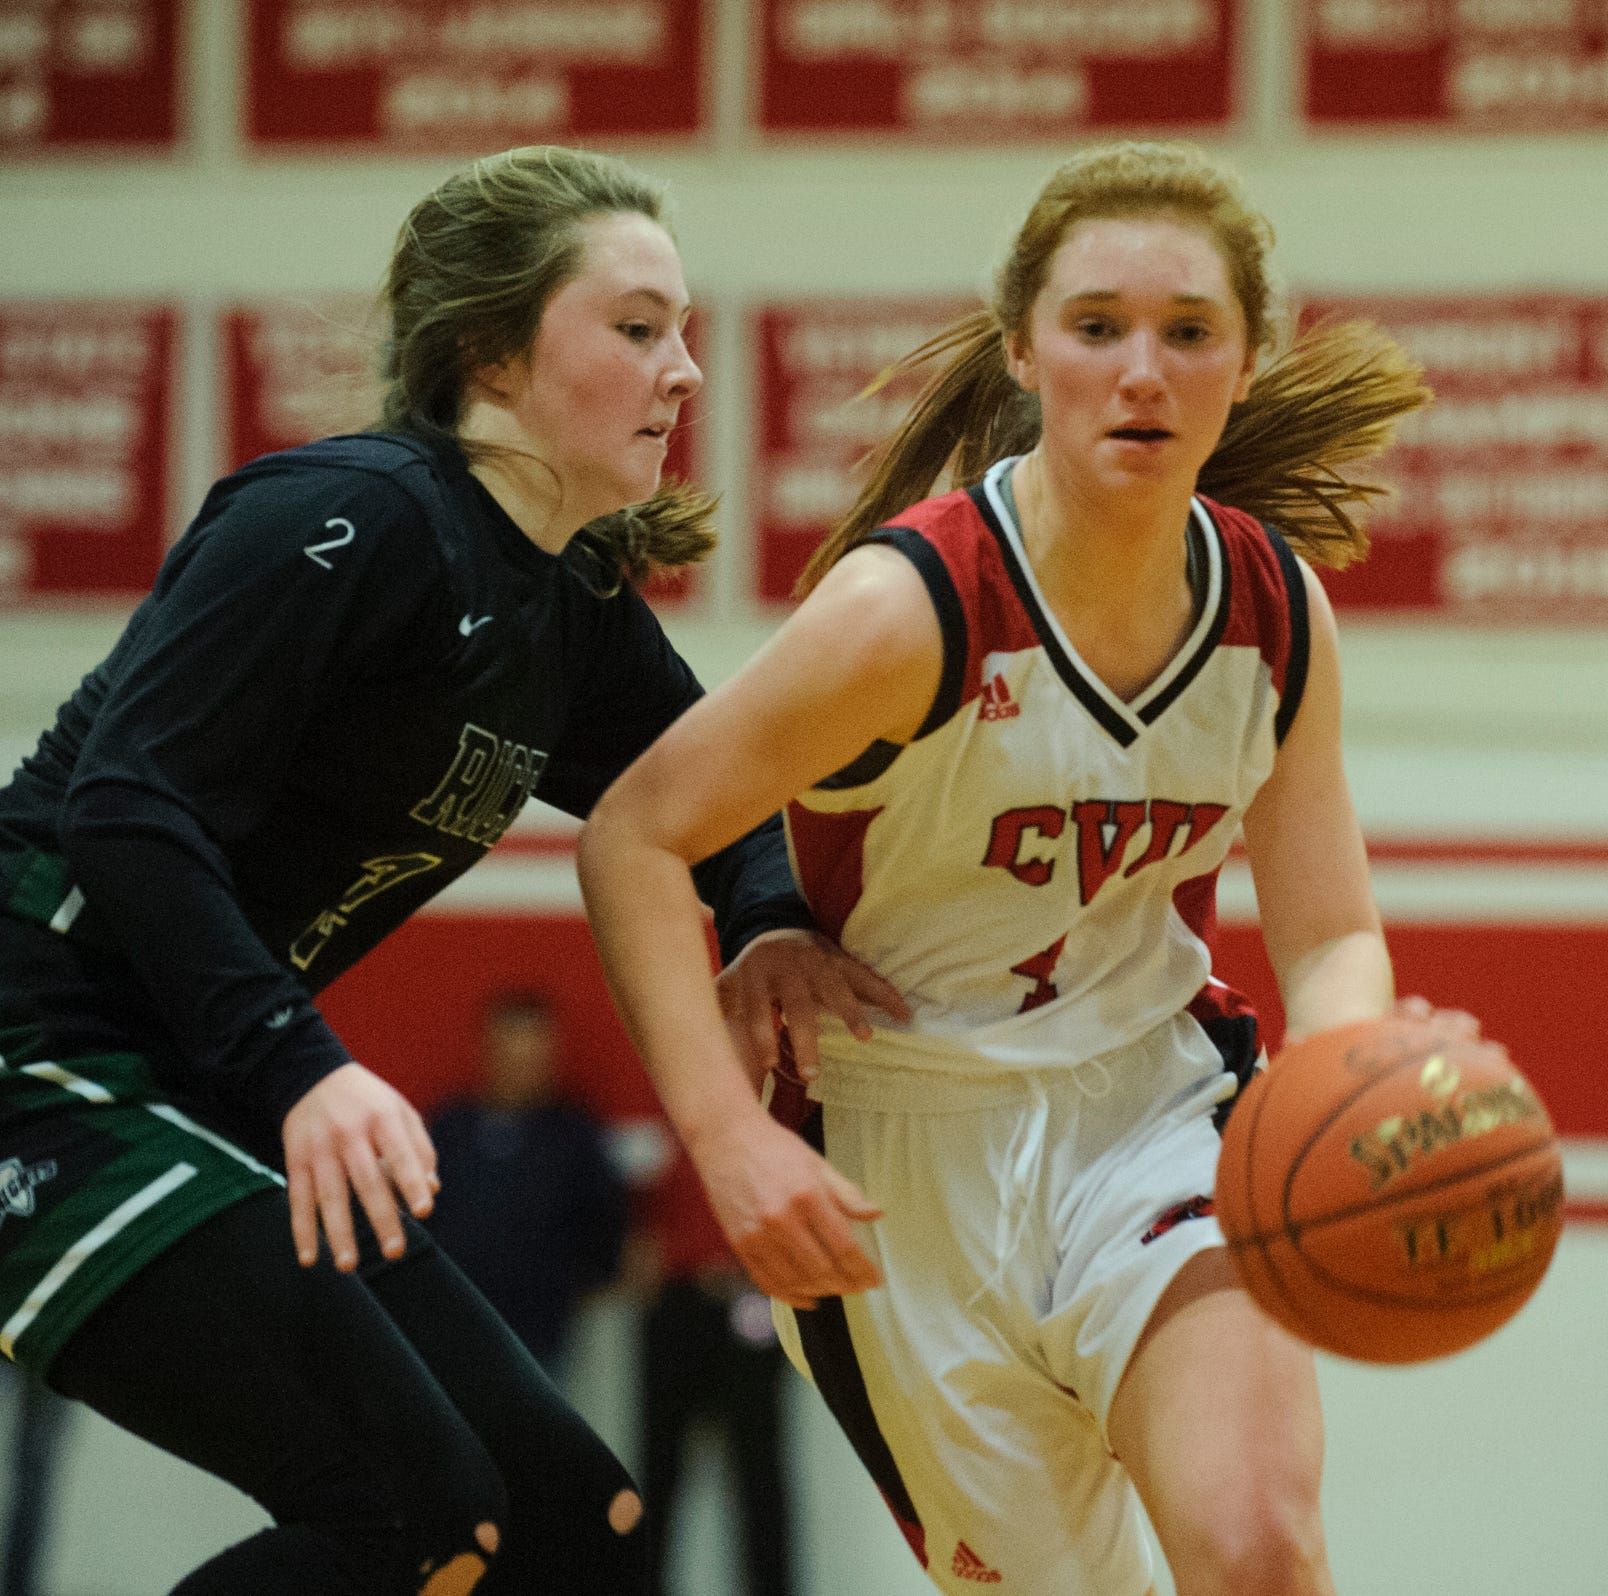 Tuesday's Vermont sports scores and Wednesday's schedule